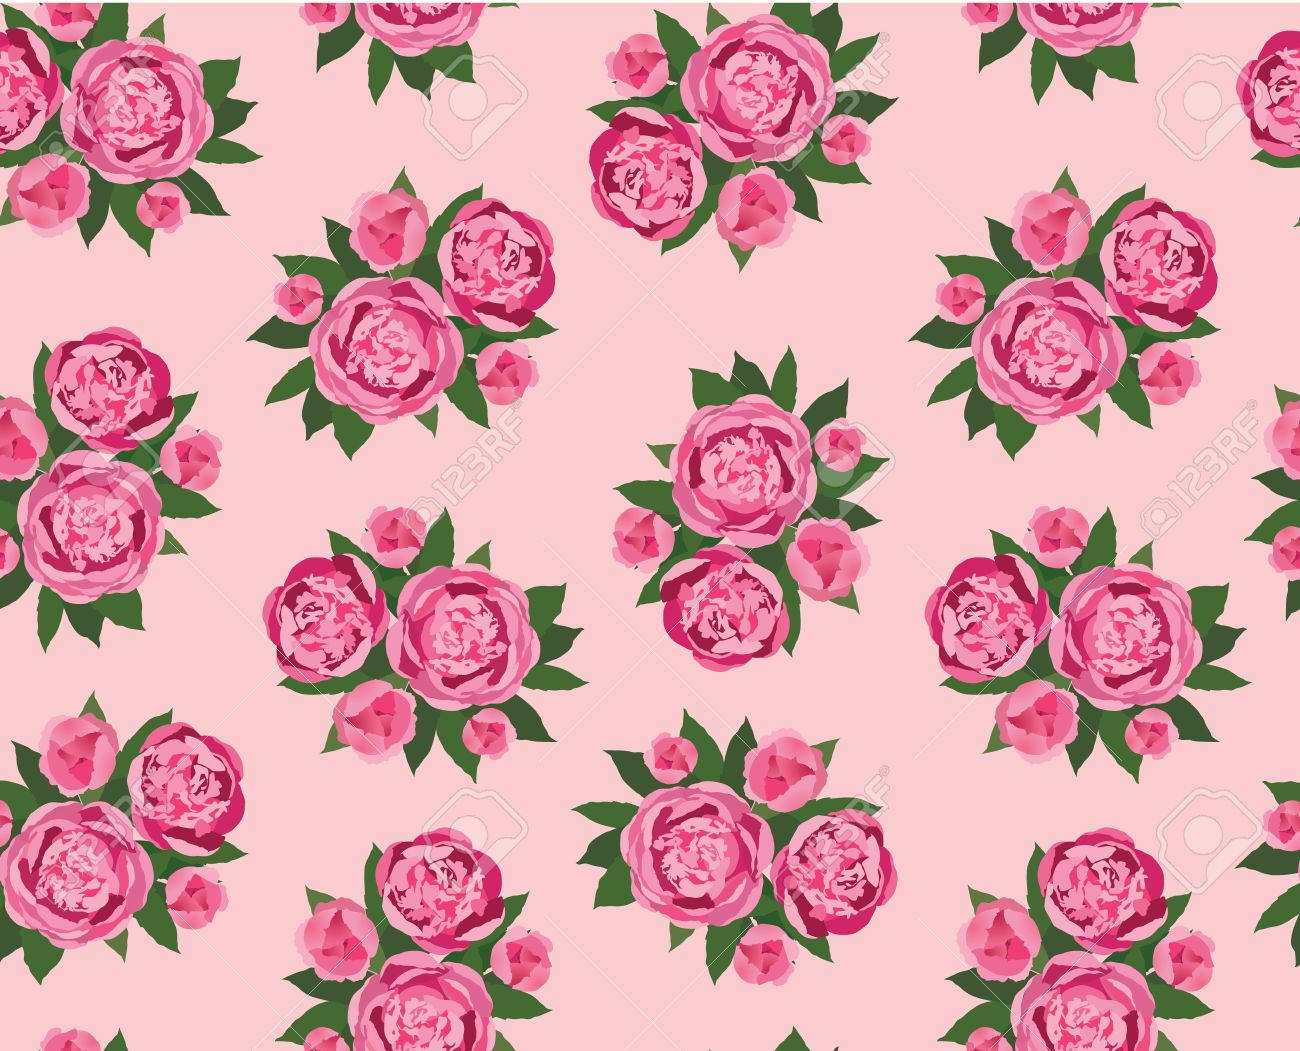 Pink floral seamless vector background floral hrysanthemum seamless - Floral Seamless Pattern Pink Flower Peony Background Stock Vector 16140108